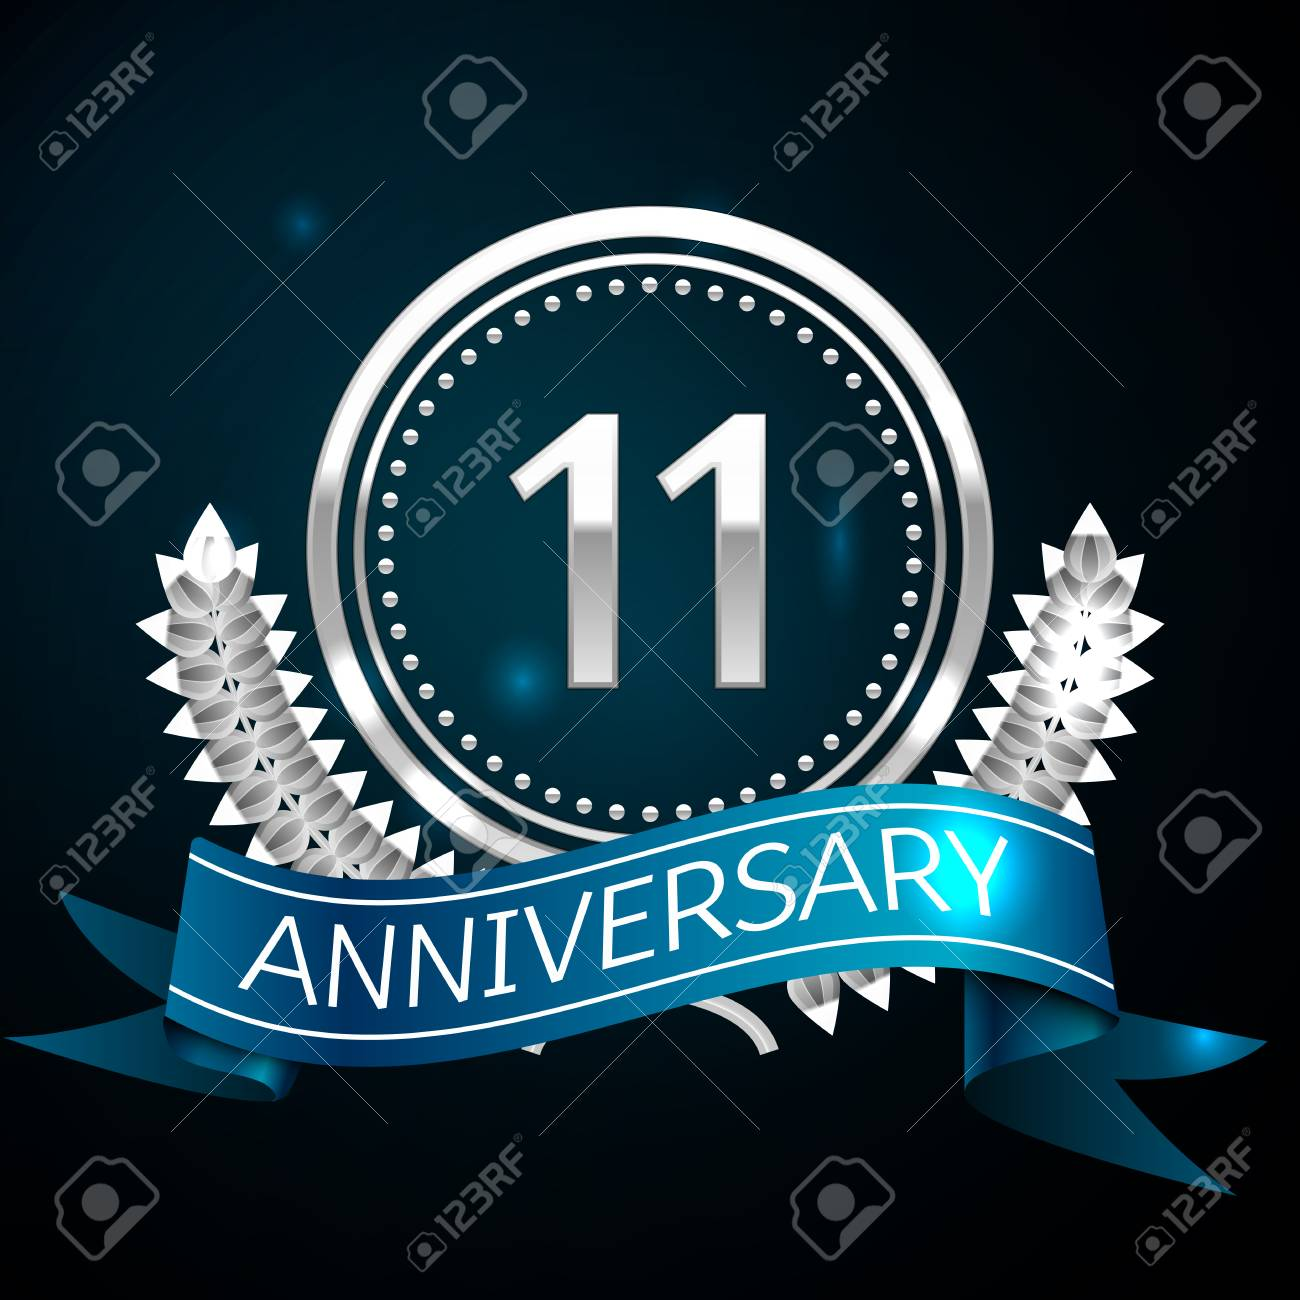 Realistic Eleven Years Anniversary Celebration Design with Silver Ring and Laurel Wreath, blue ribbon on blue background. Colorful Vector template elements for your birthday celebrating party - 103070685